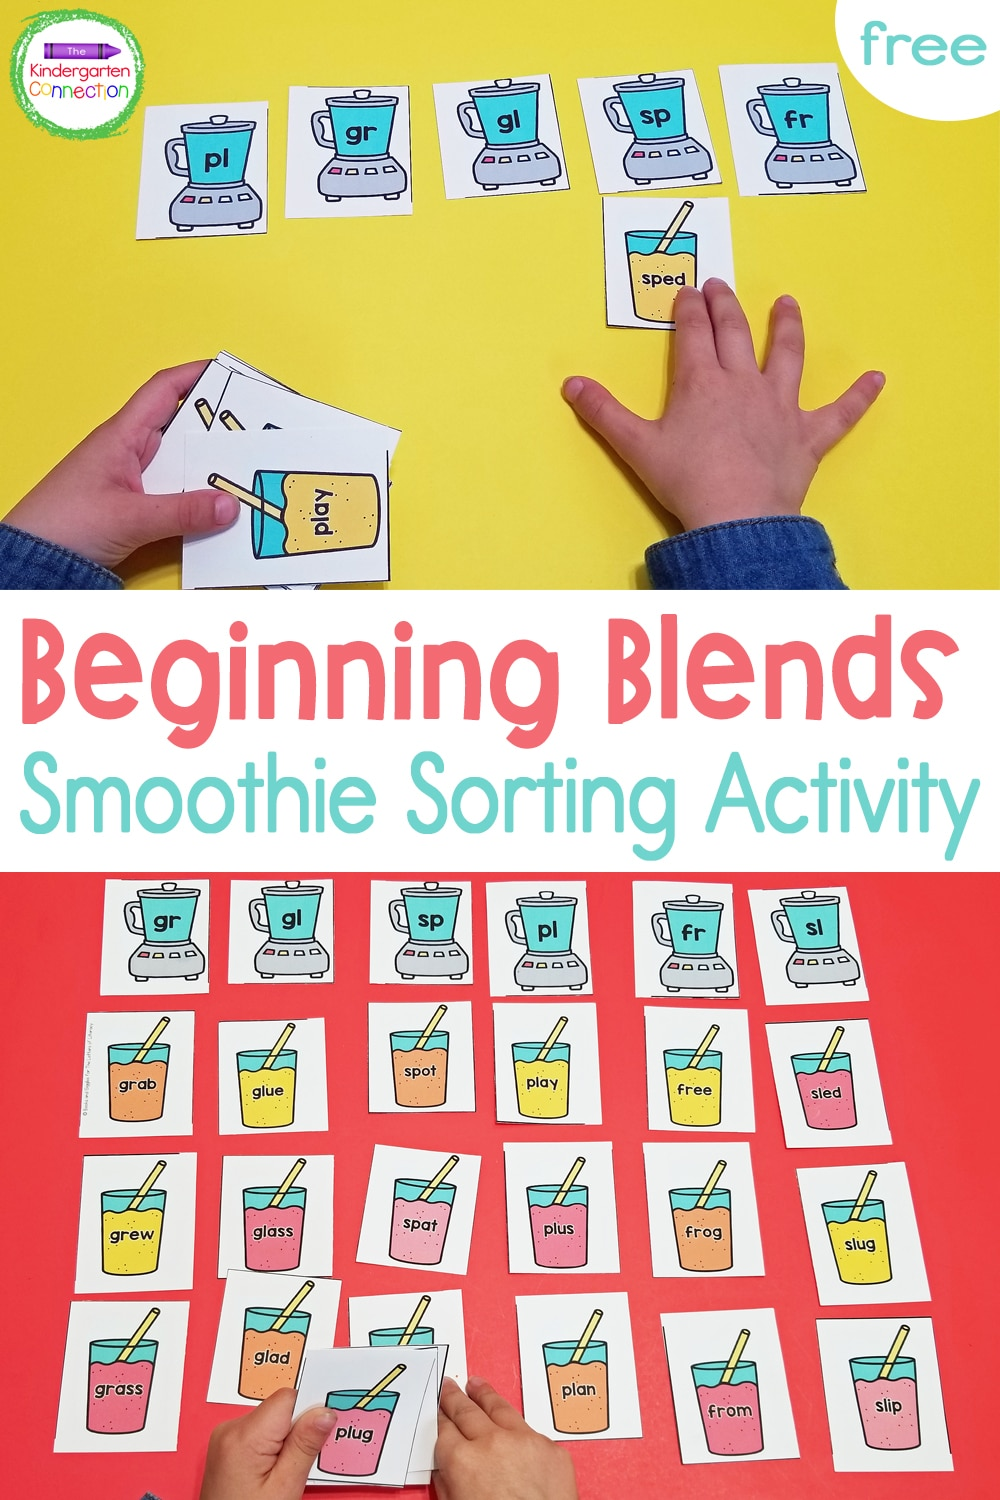 Grab our FREE Beginning Blends Smoothie Sorting Activity for your Kindergarten literacy centers, small groups, or independent practice!